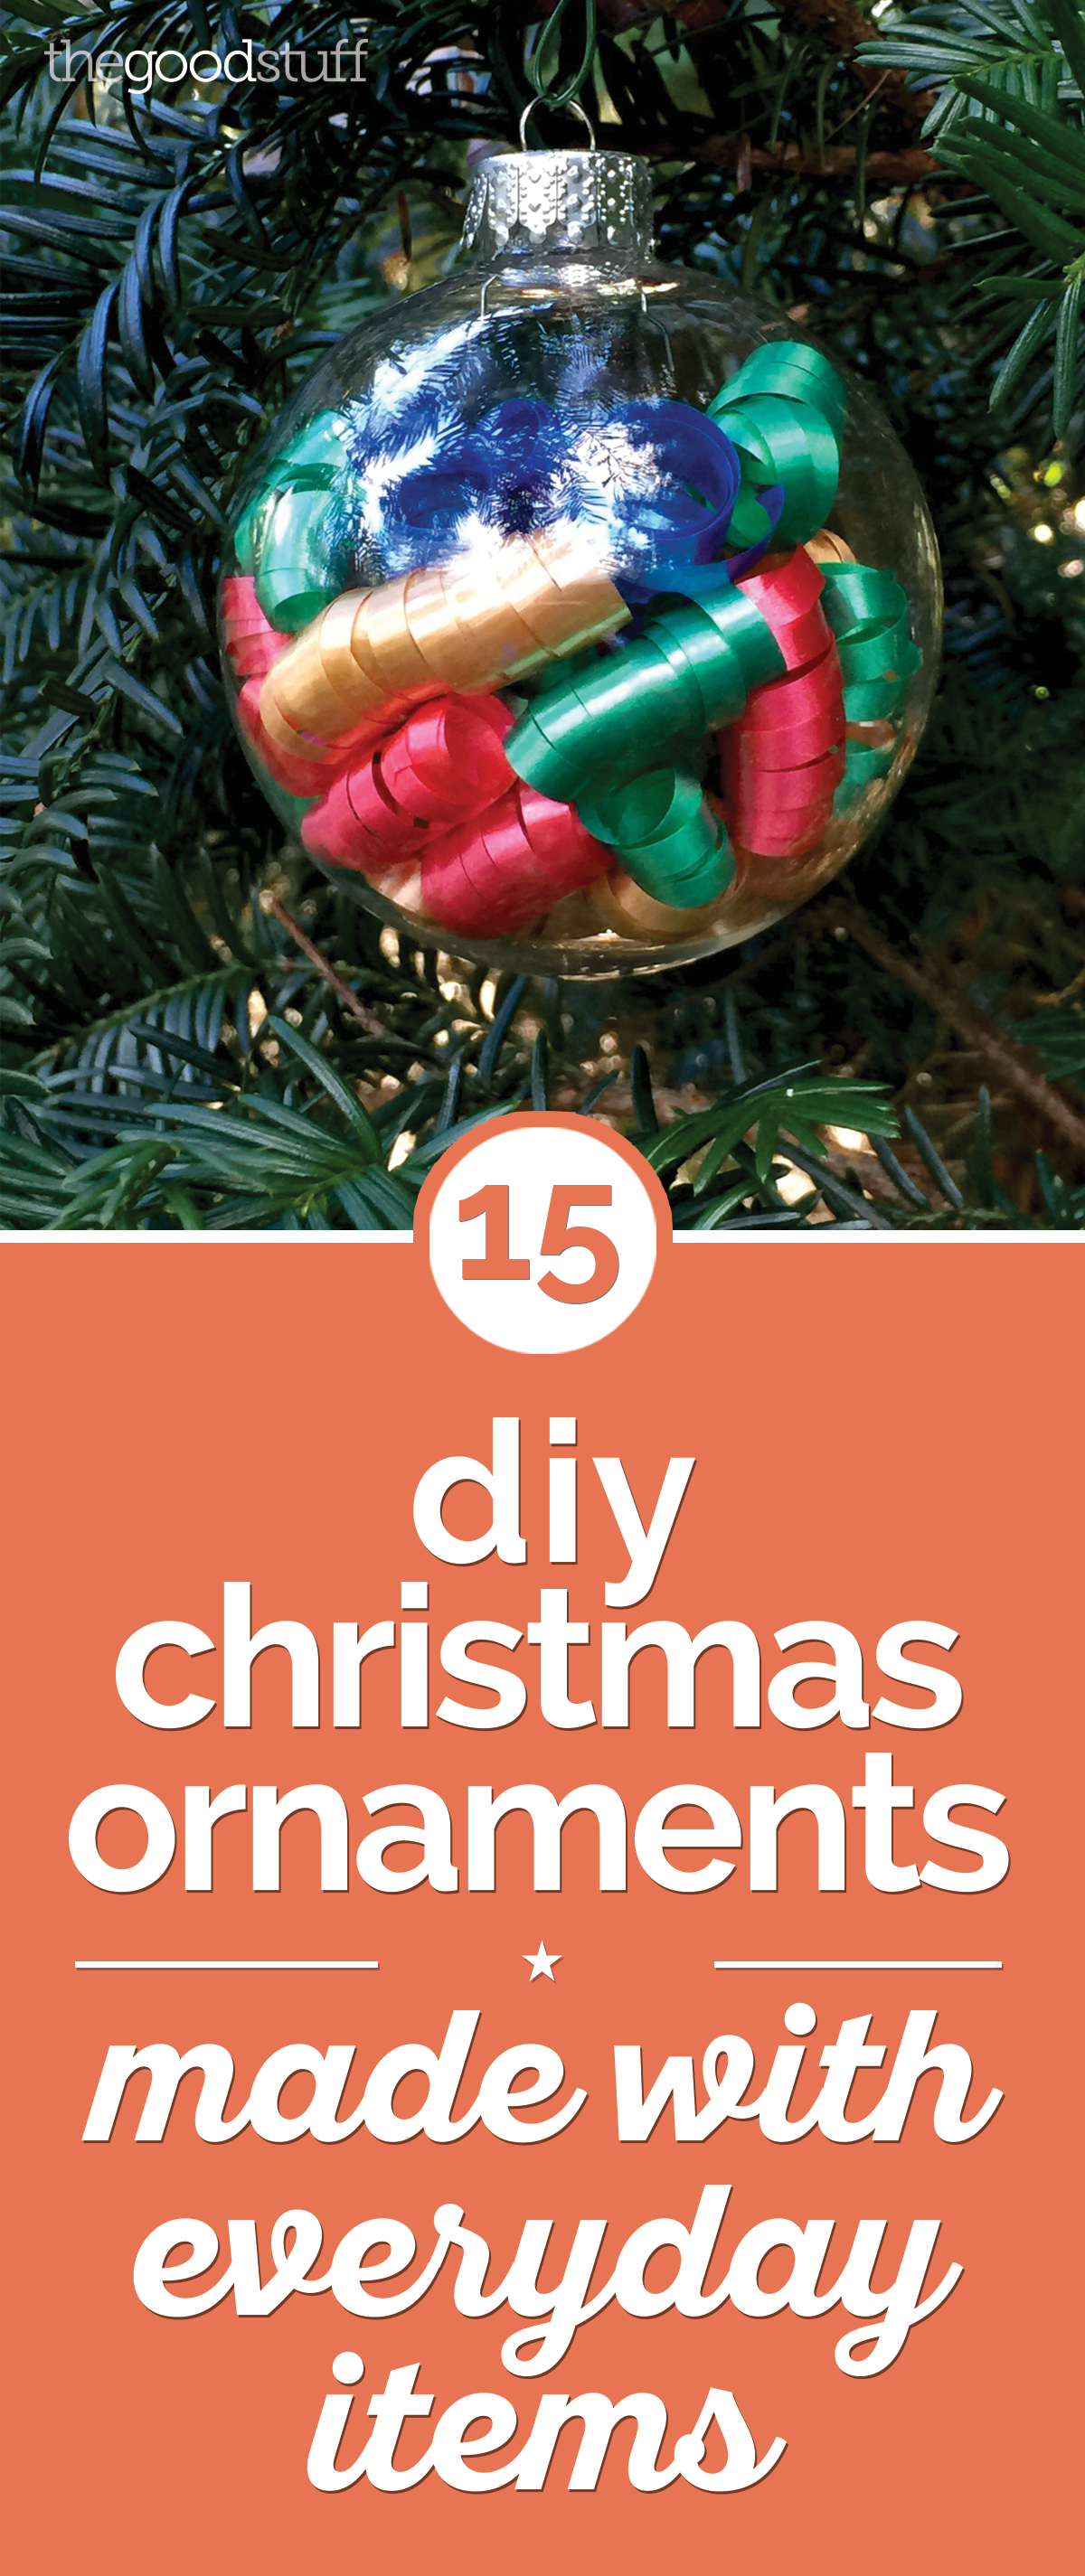 15 Glam Easy Diy Christmas Ornaments Thegoodstuff